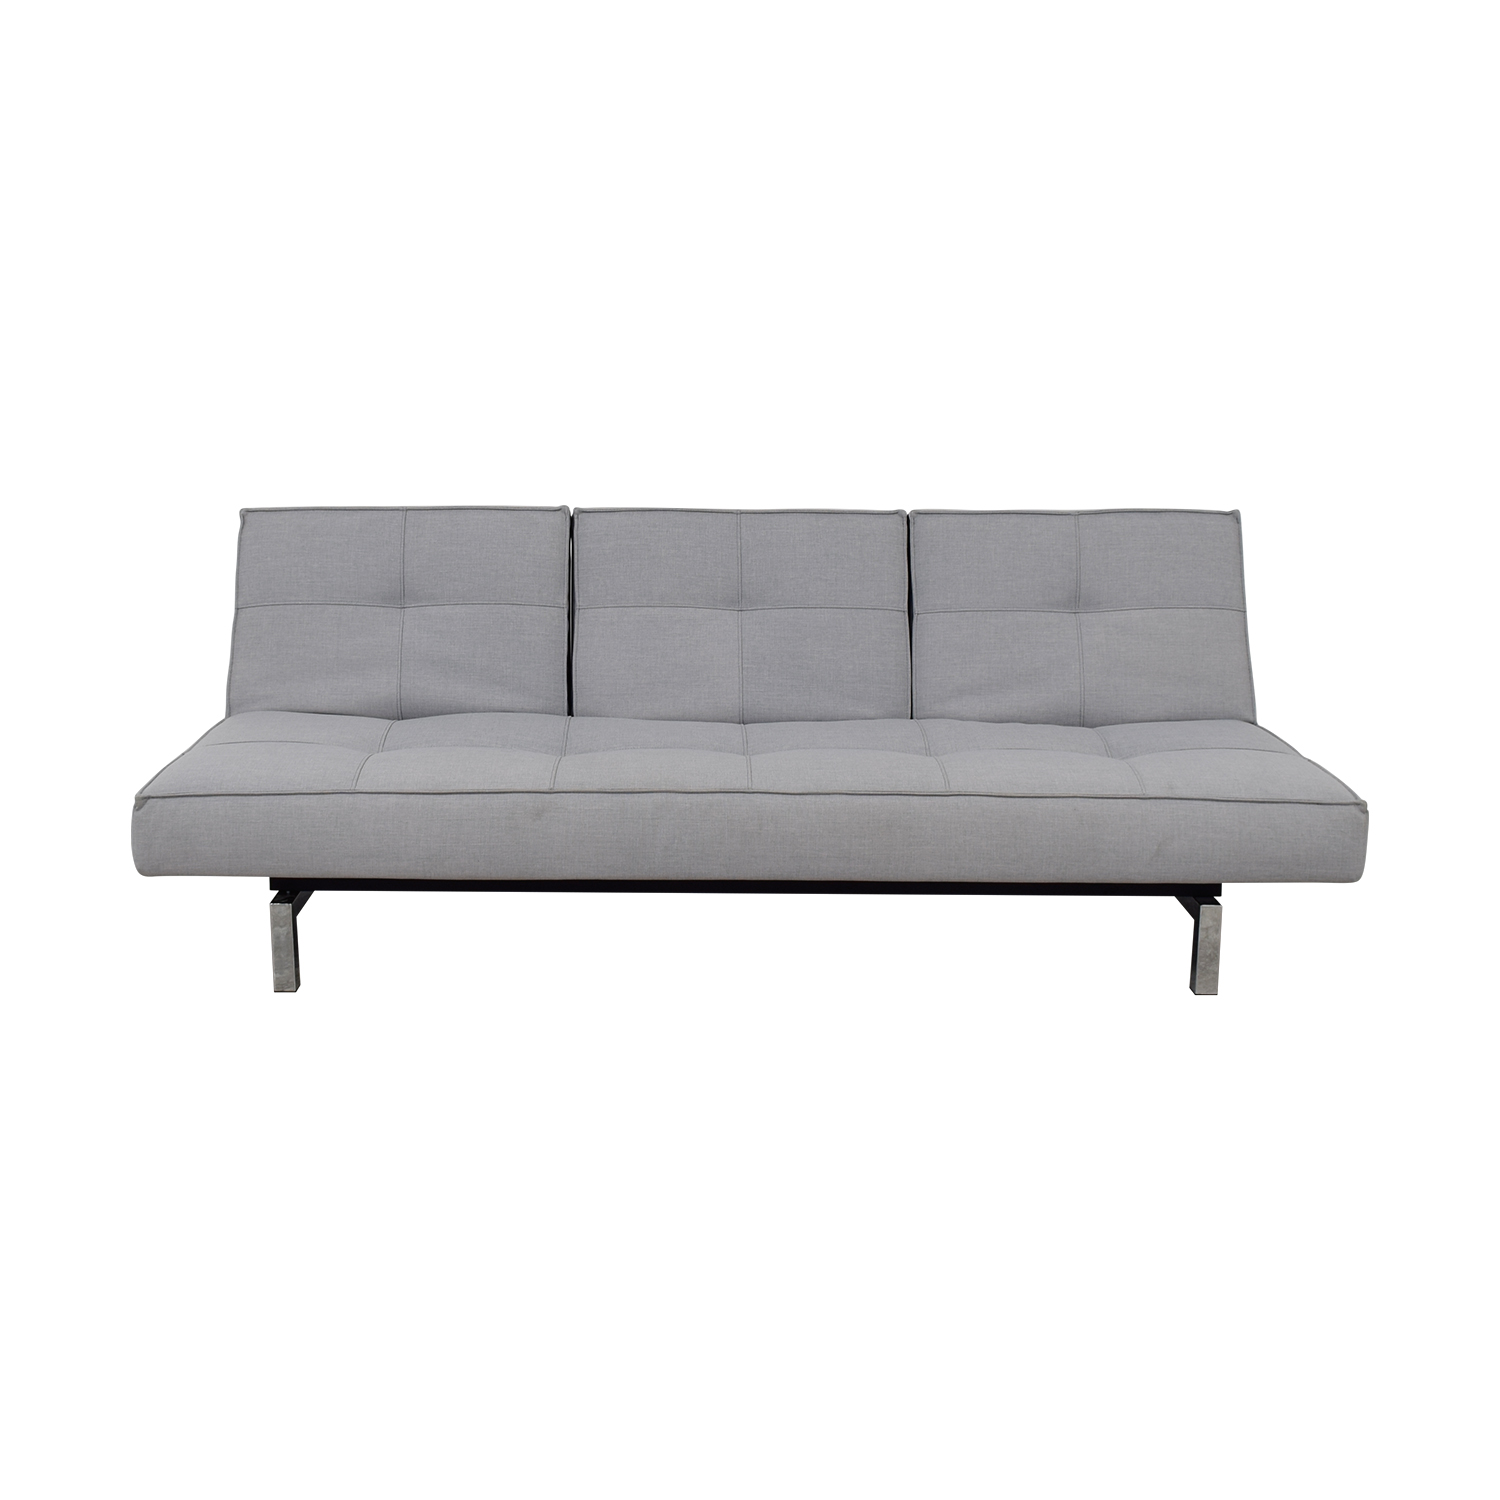 Innovation Convertible Grey Tufted Sleeper Sofa sale